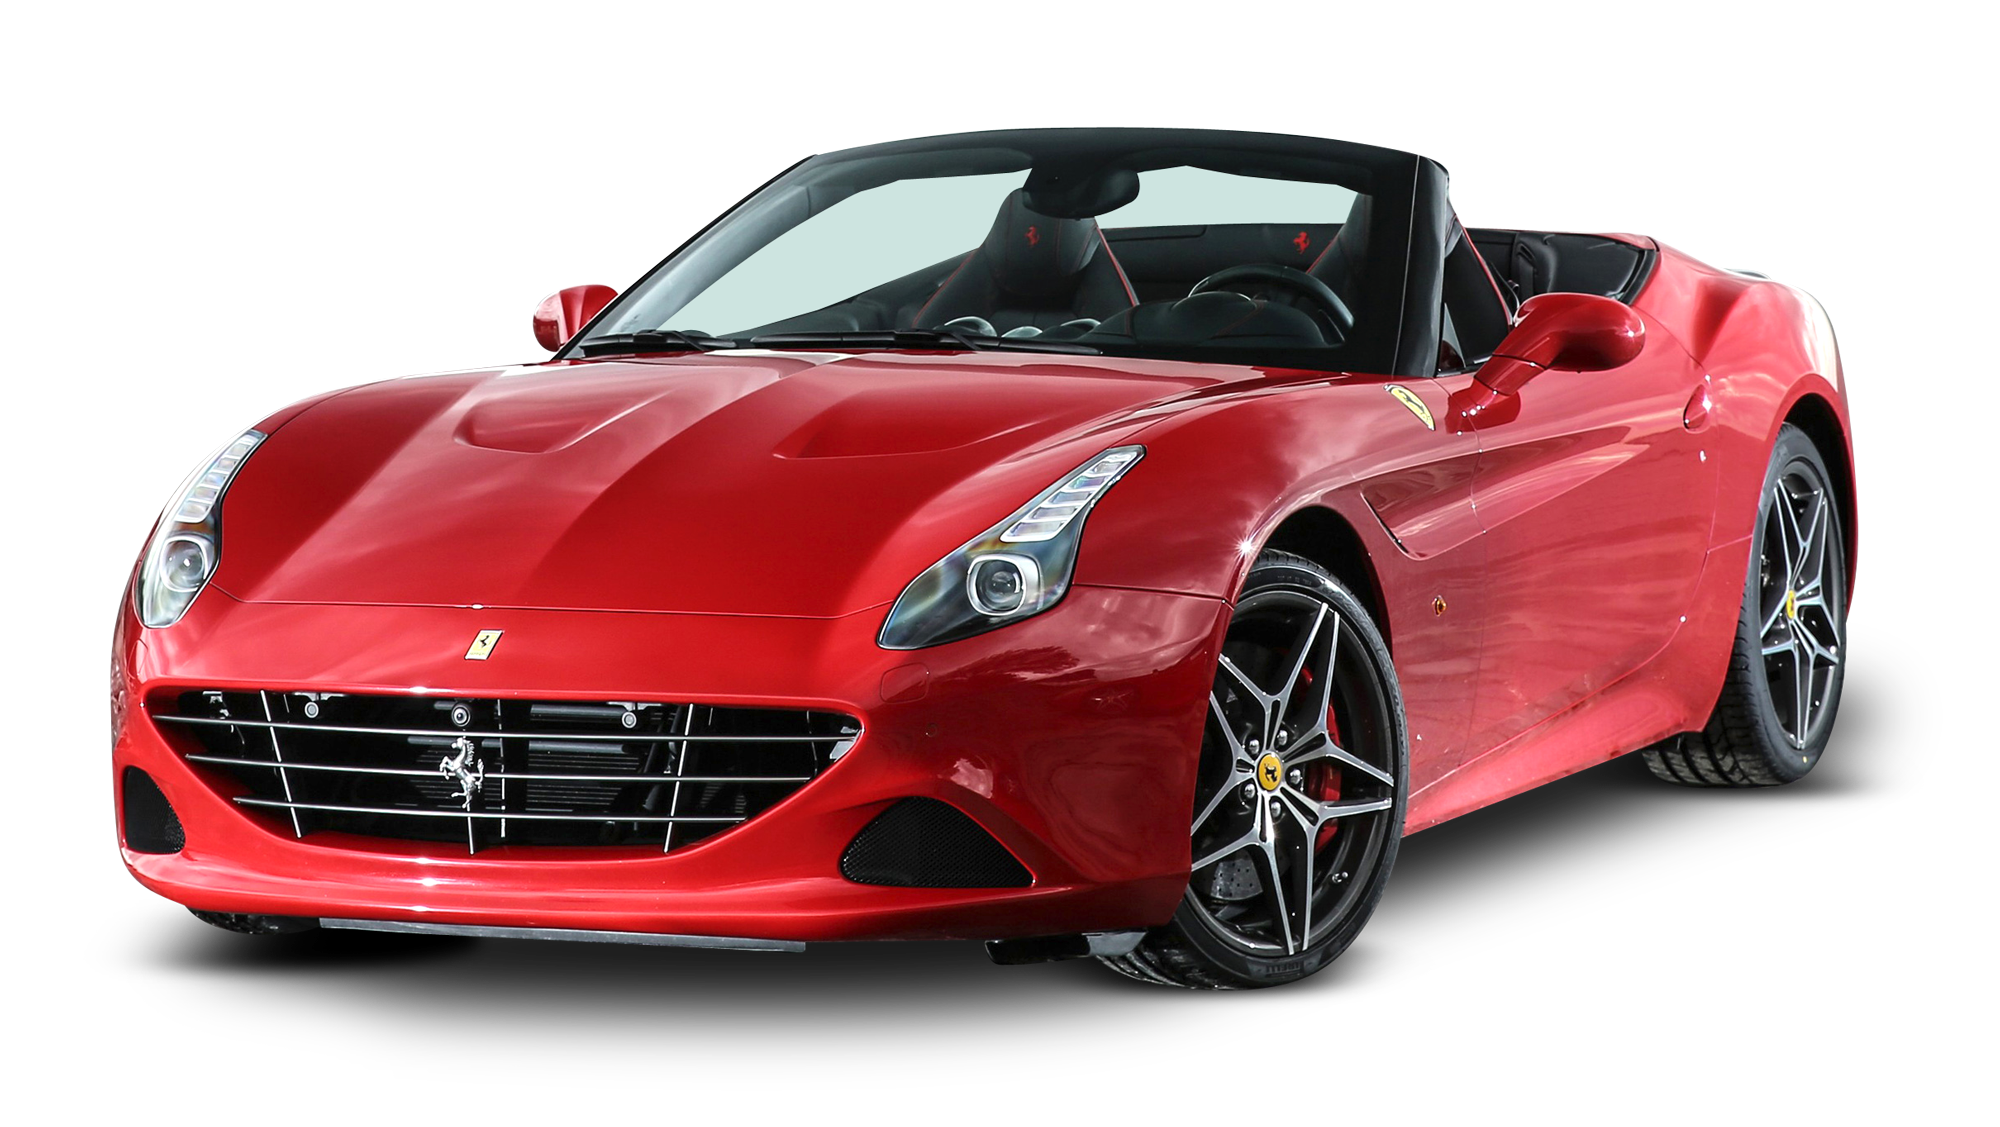 Ferrari California Red Car PNG Image.